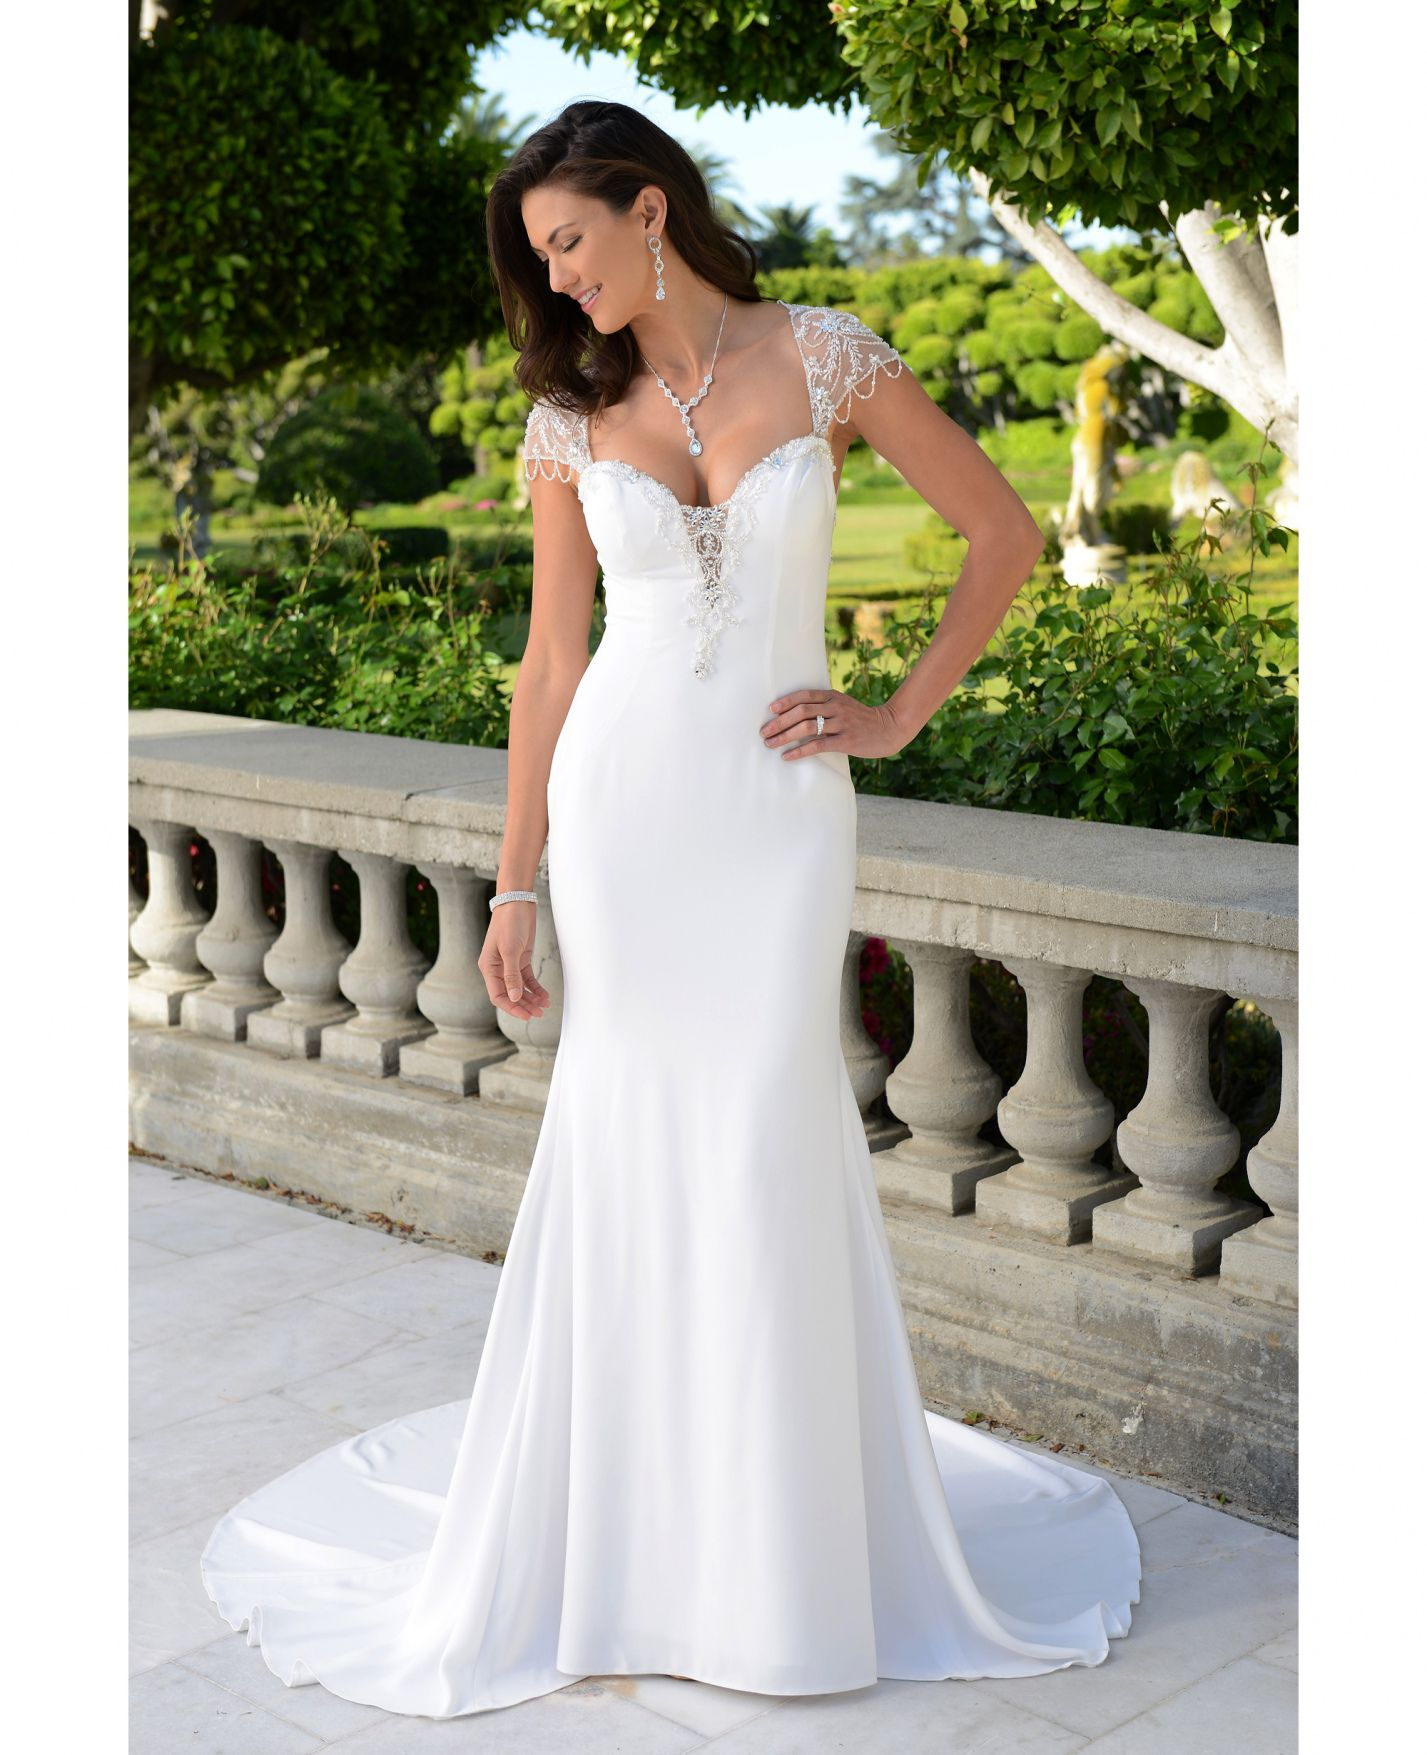 20+ Consignment Wedding Dresses San Diego - Dress for Country ...